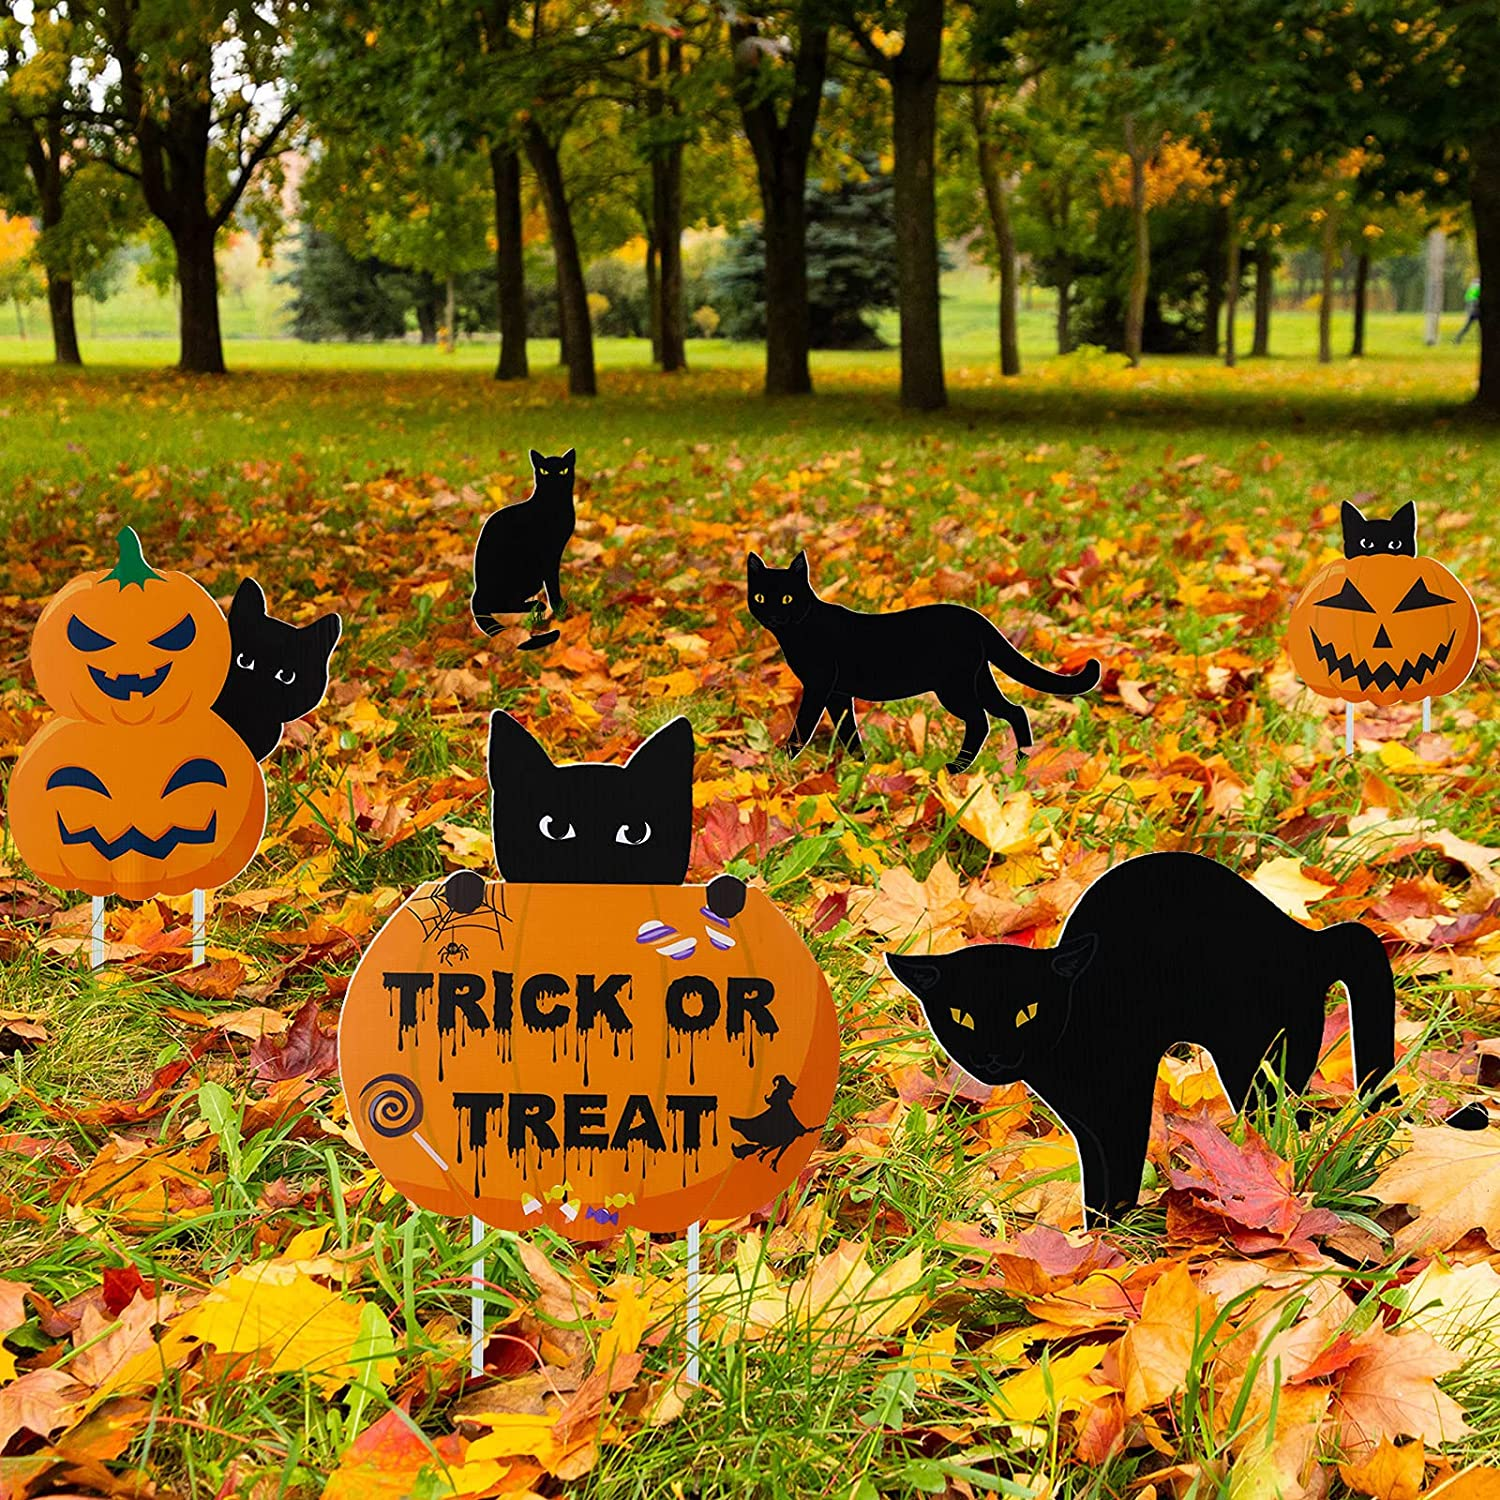 6 Pieces Halloween Black Cat Yard Signs with Stakes Black Cat Silhouette Decorative Garden Statue Garden Scare Cats with Reflective Eyes Trick or Treat Cat Pumpkin Lawn Decor for Party Patio Supplies